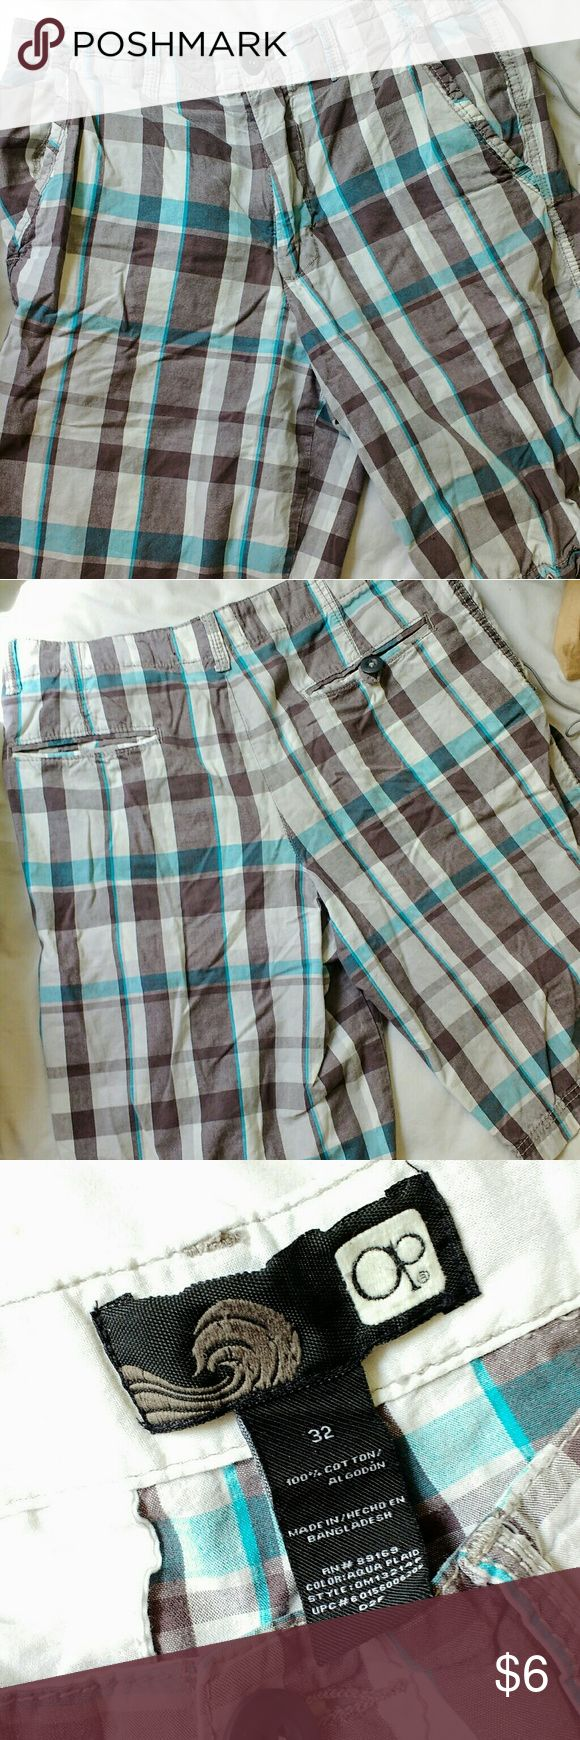 Men's Plaid Shorts Gently used plaid shorts. These could use an ironing, and I think the color is a little faded, but overall good condition! No holes, stains, tears. OP Shorts Cargo